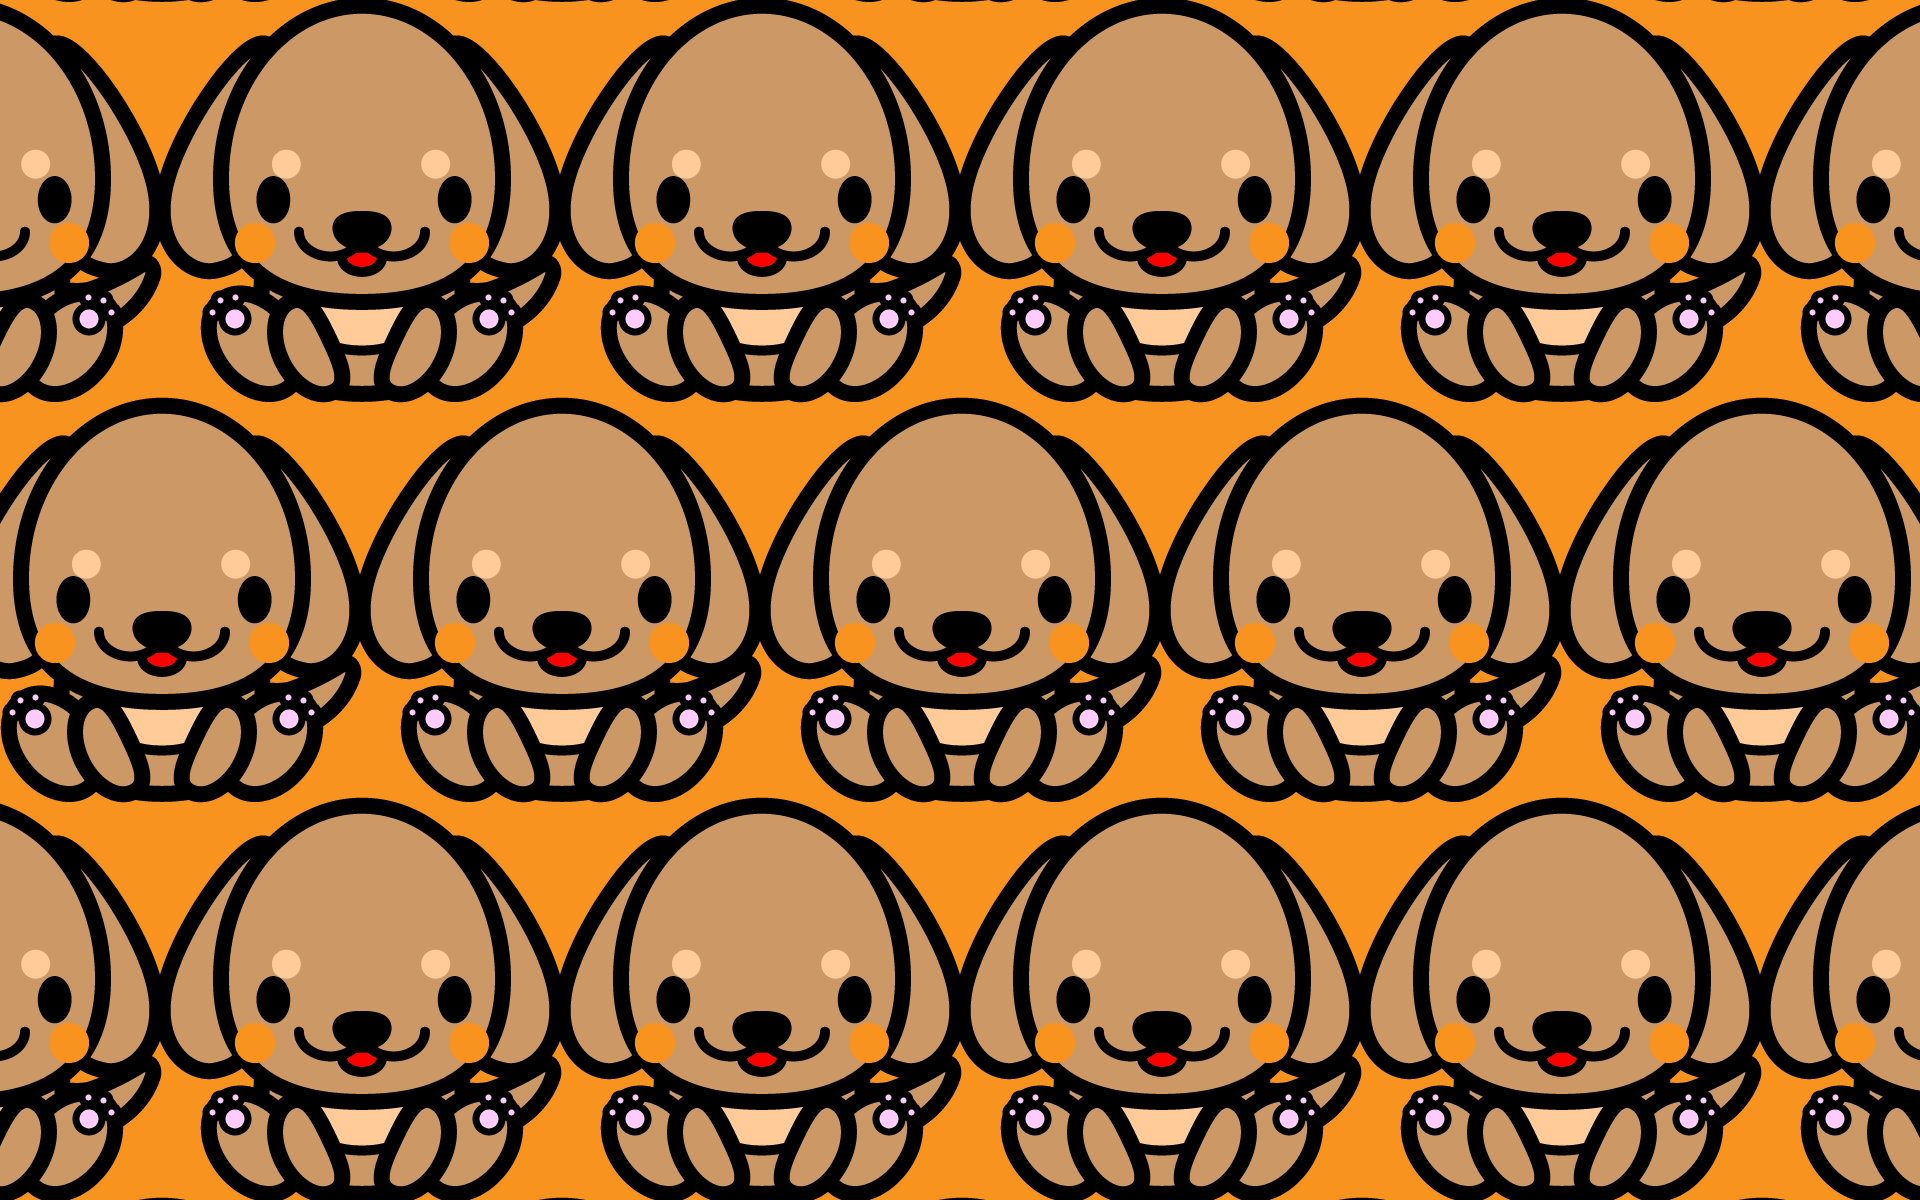 wallpaper4_sitdachshund-fiill-orange-pc